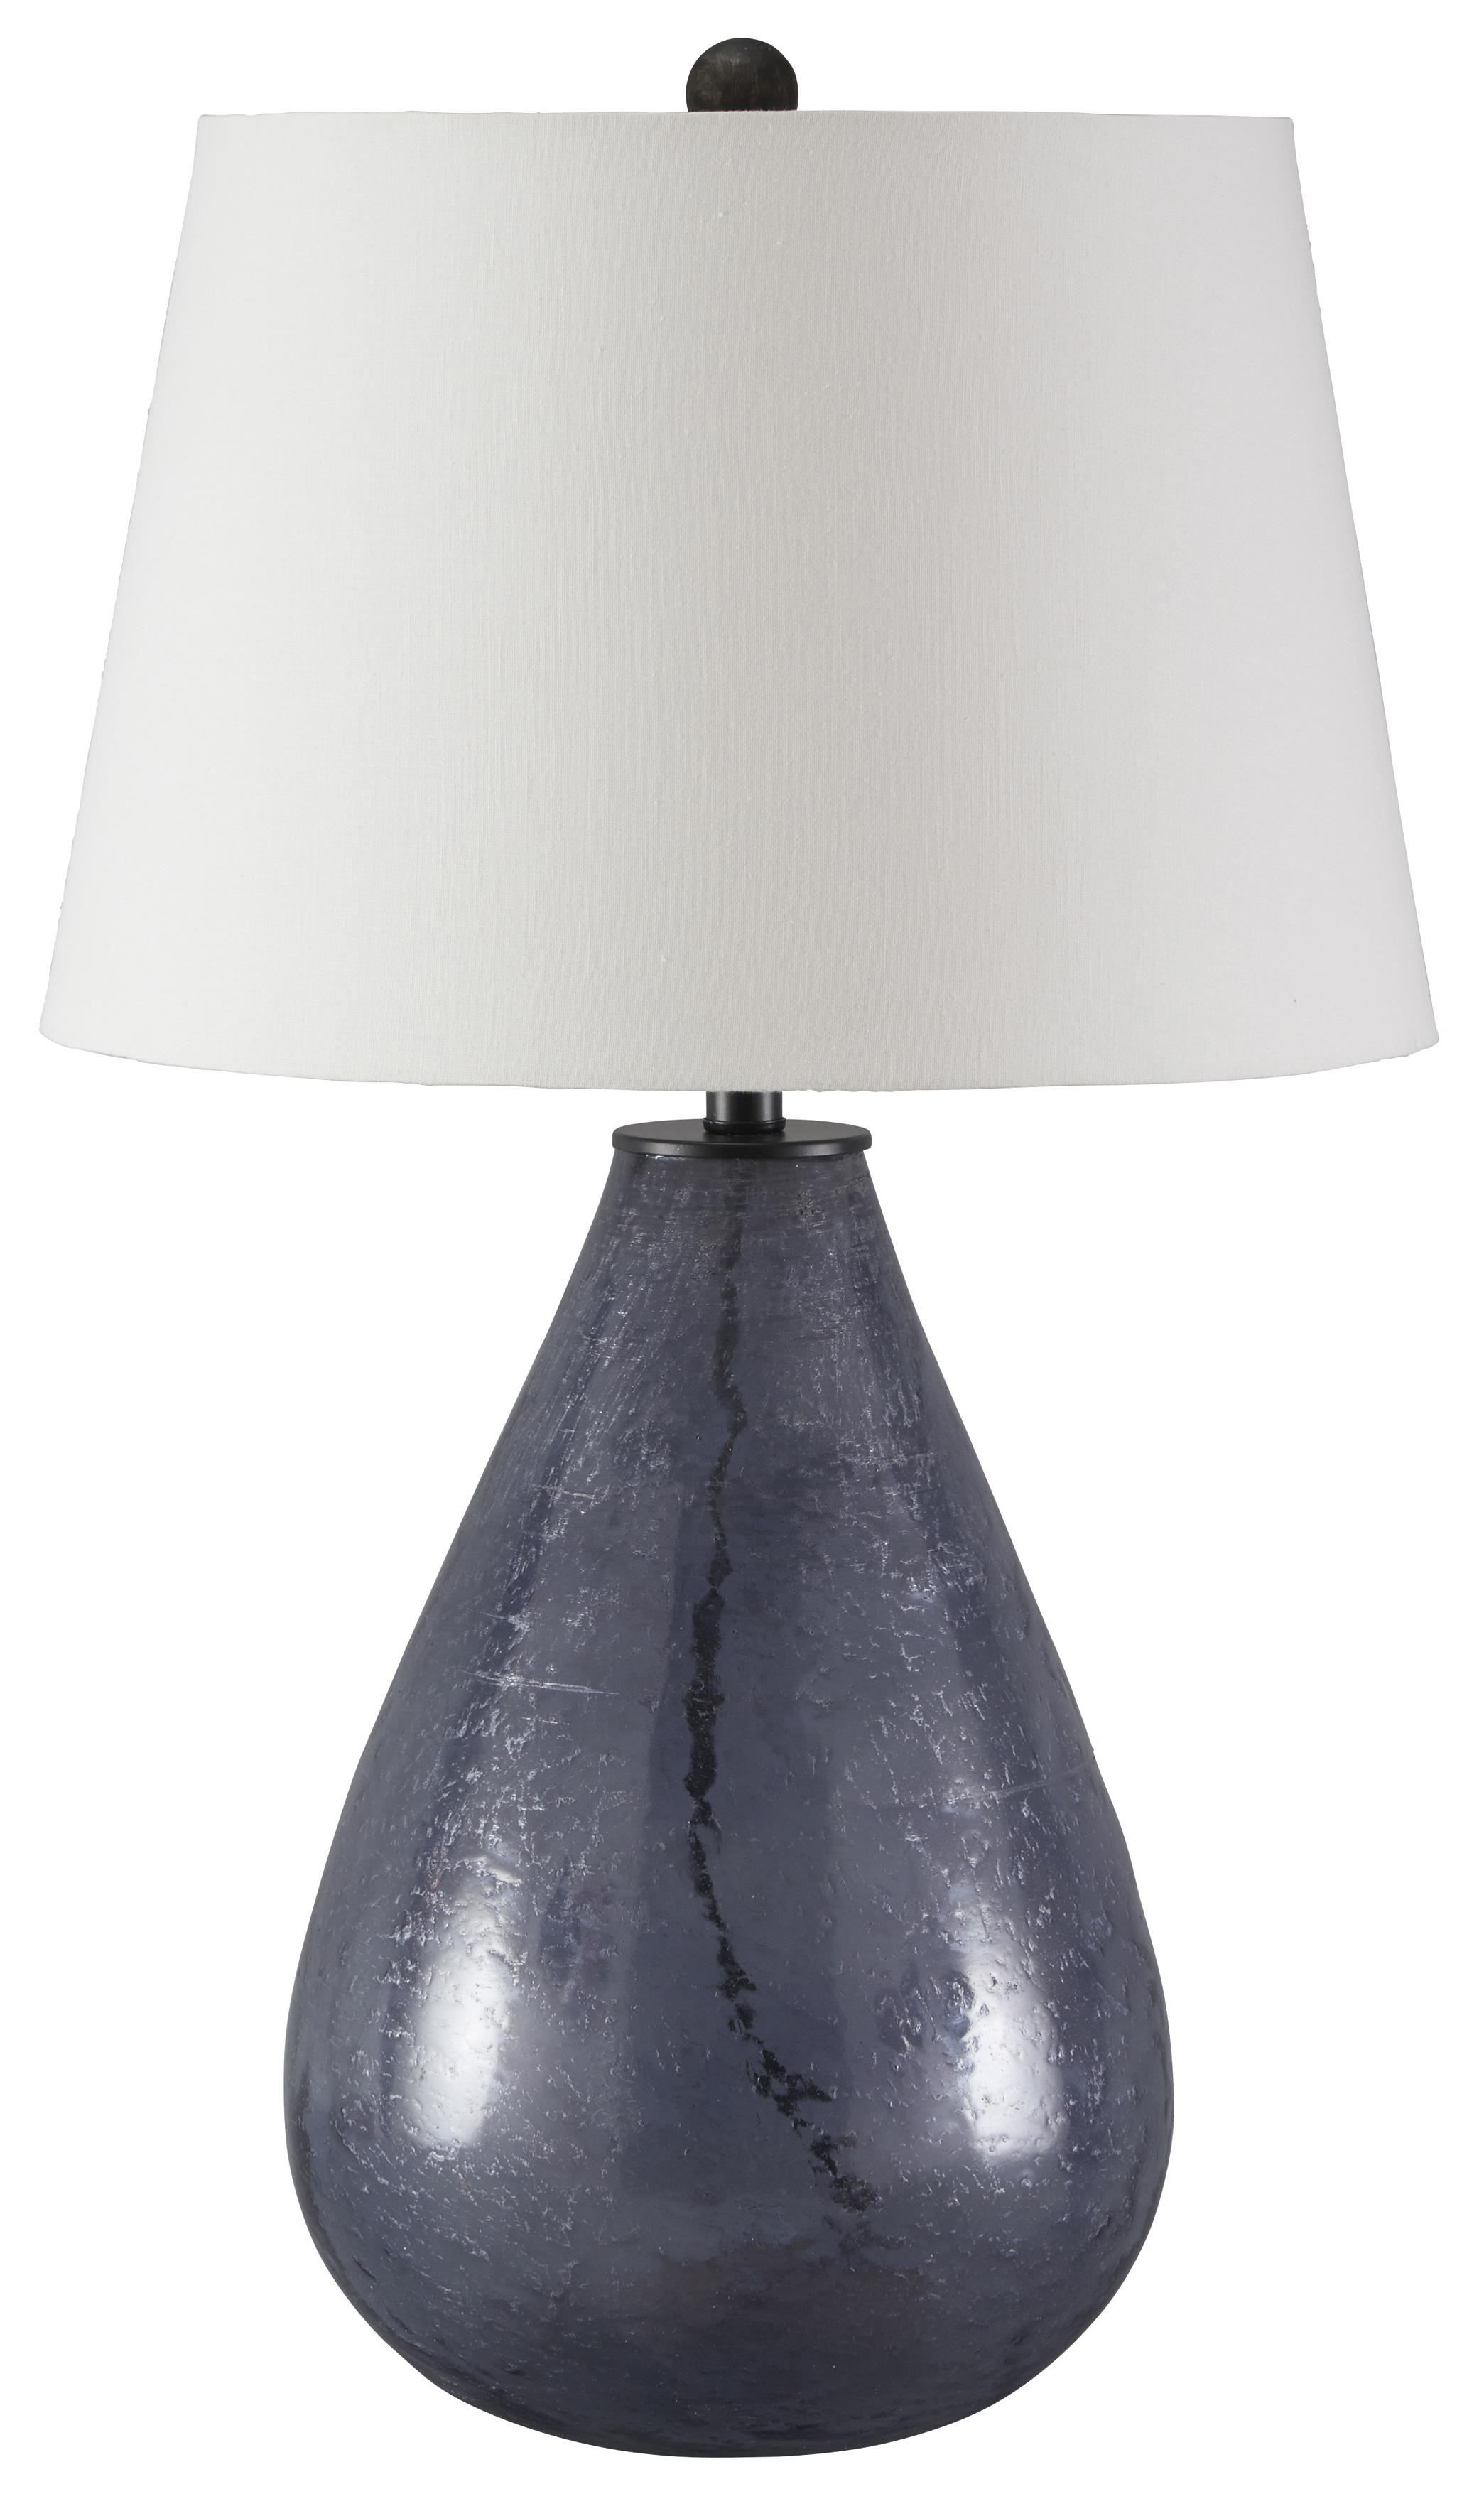 Signature Design by Ashley Lamps - Vintage Style Taber Glass Table Lamp - Item Number: L430284